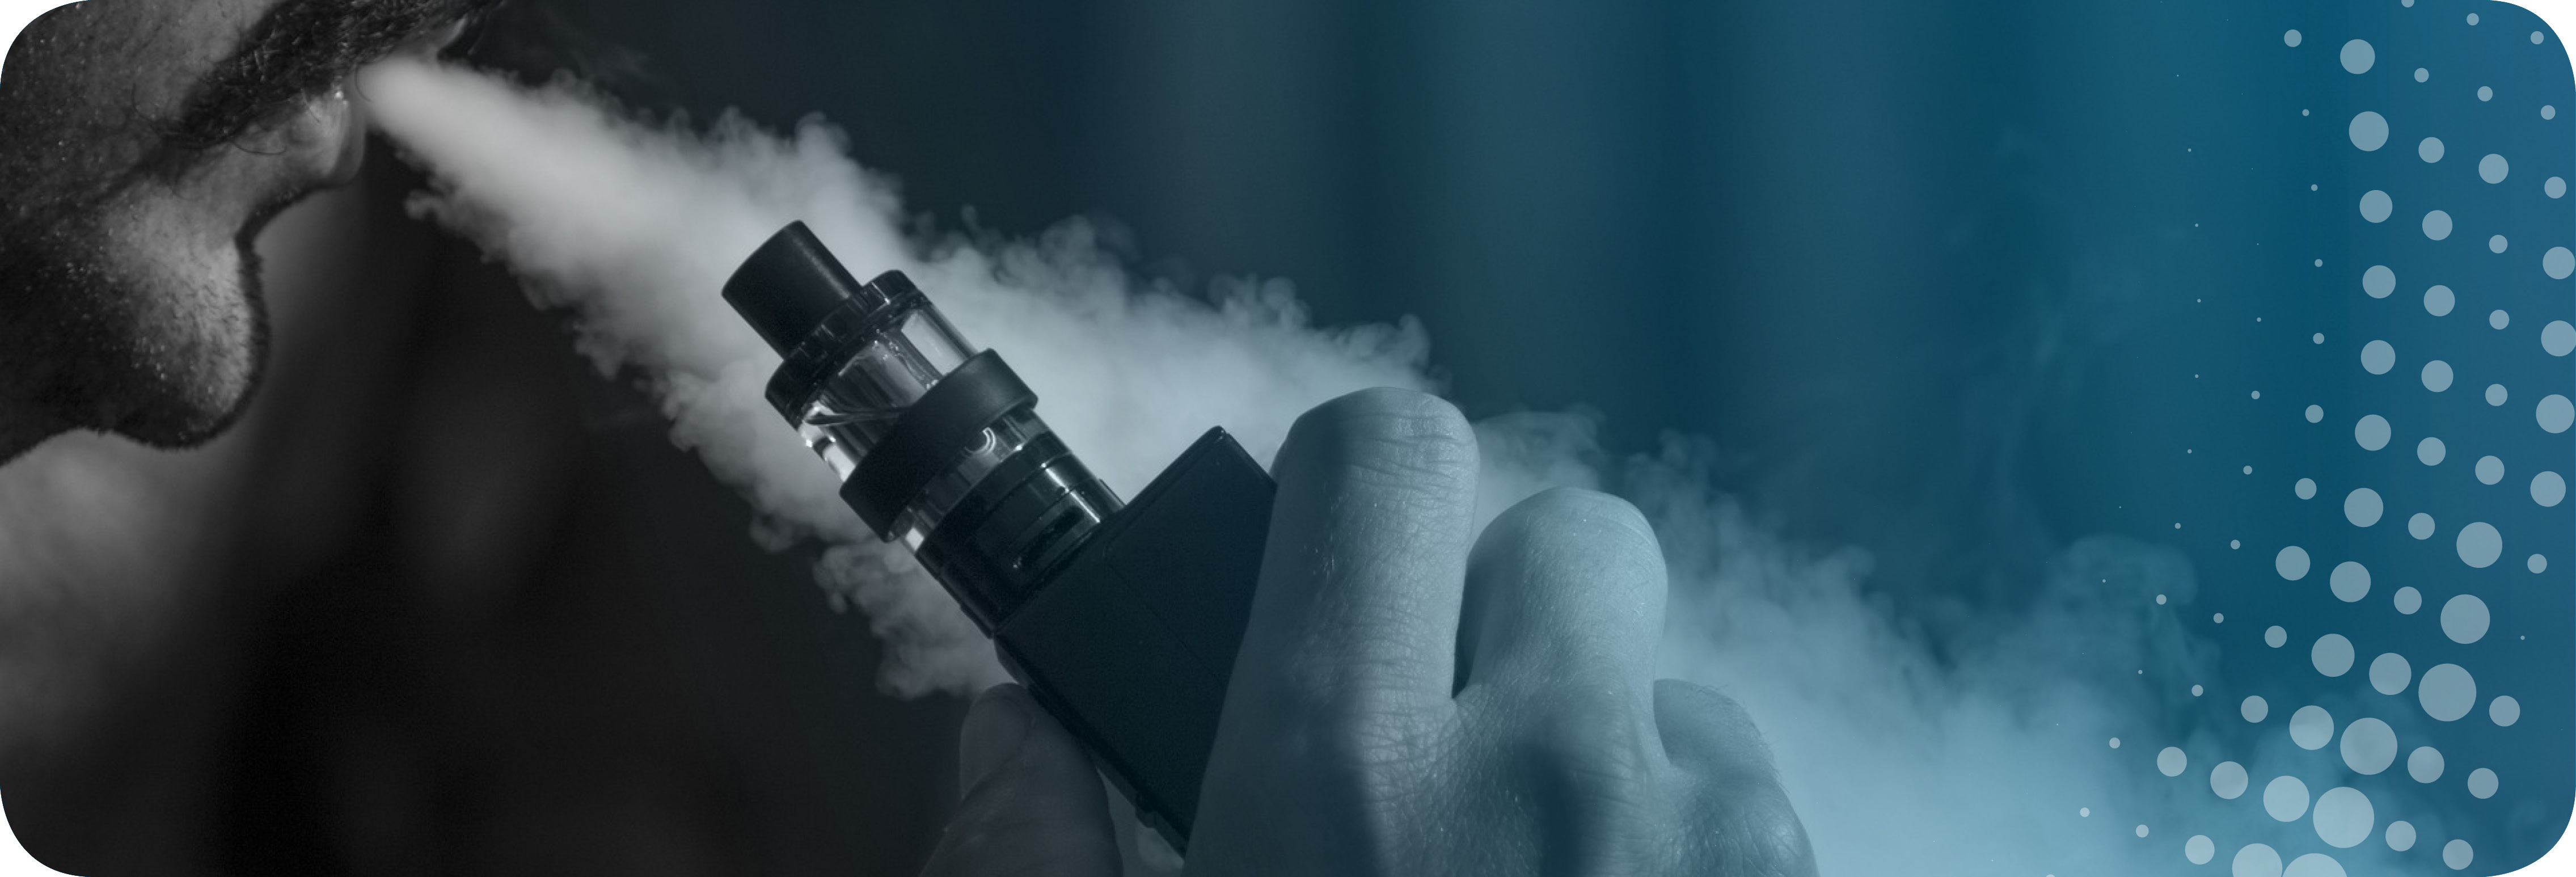 vaping suspected long term consequences health risks and death. man vaping. need for regulation